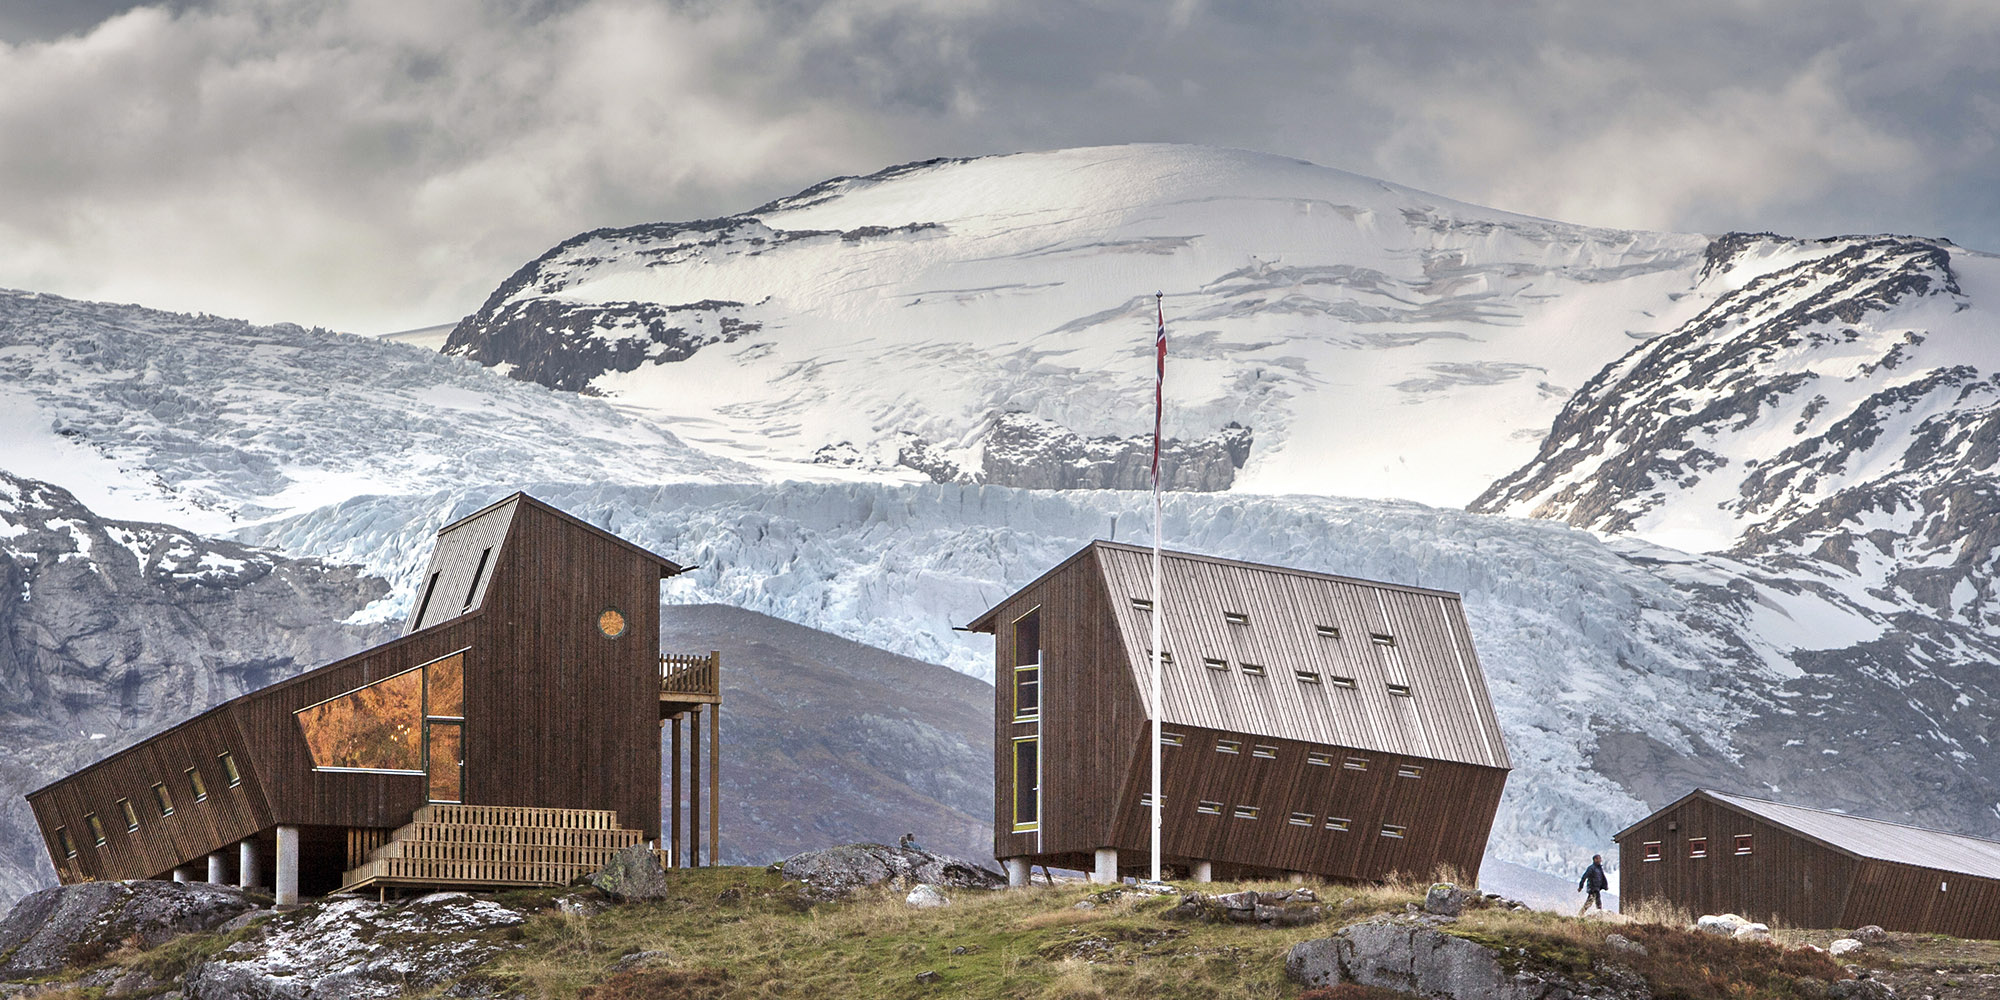 Trekking across the Norwegian icefields and a pentagonal timber cabin